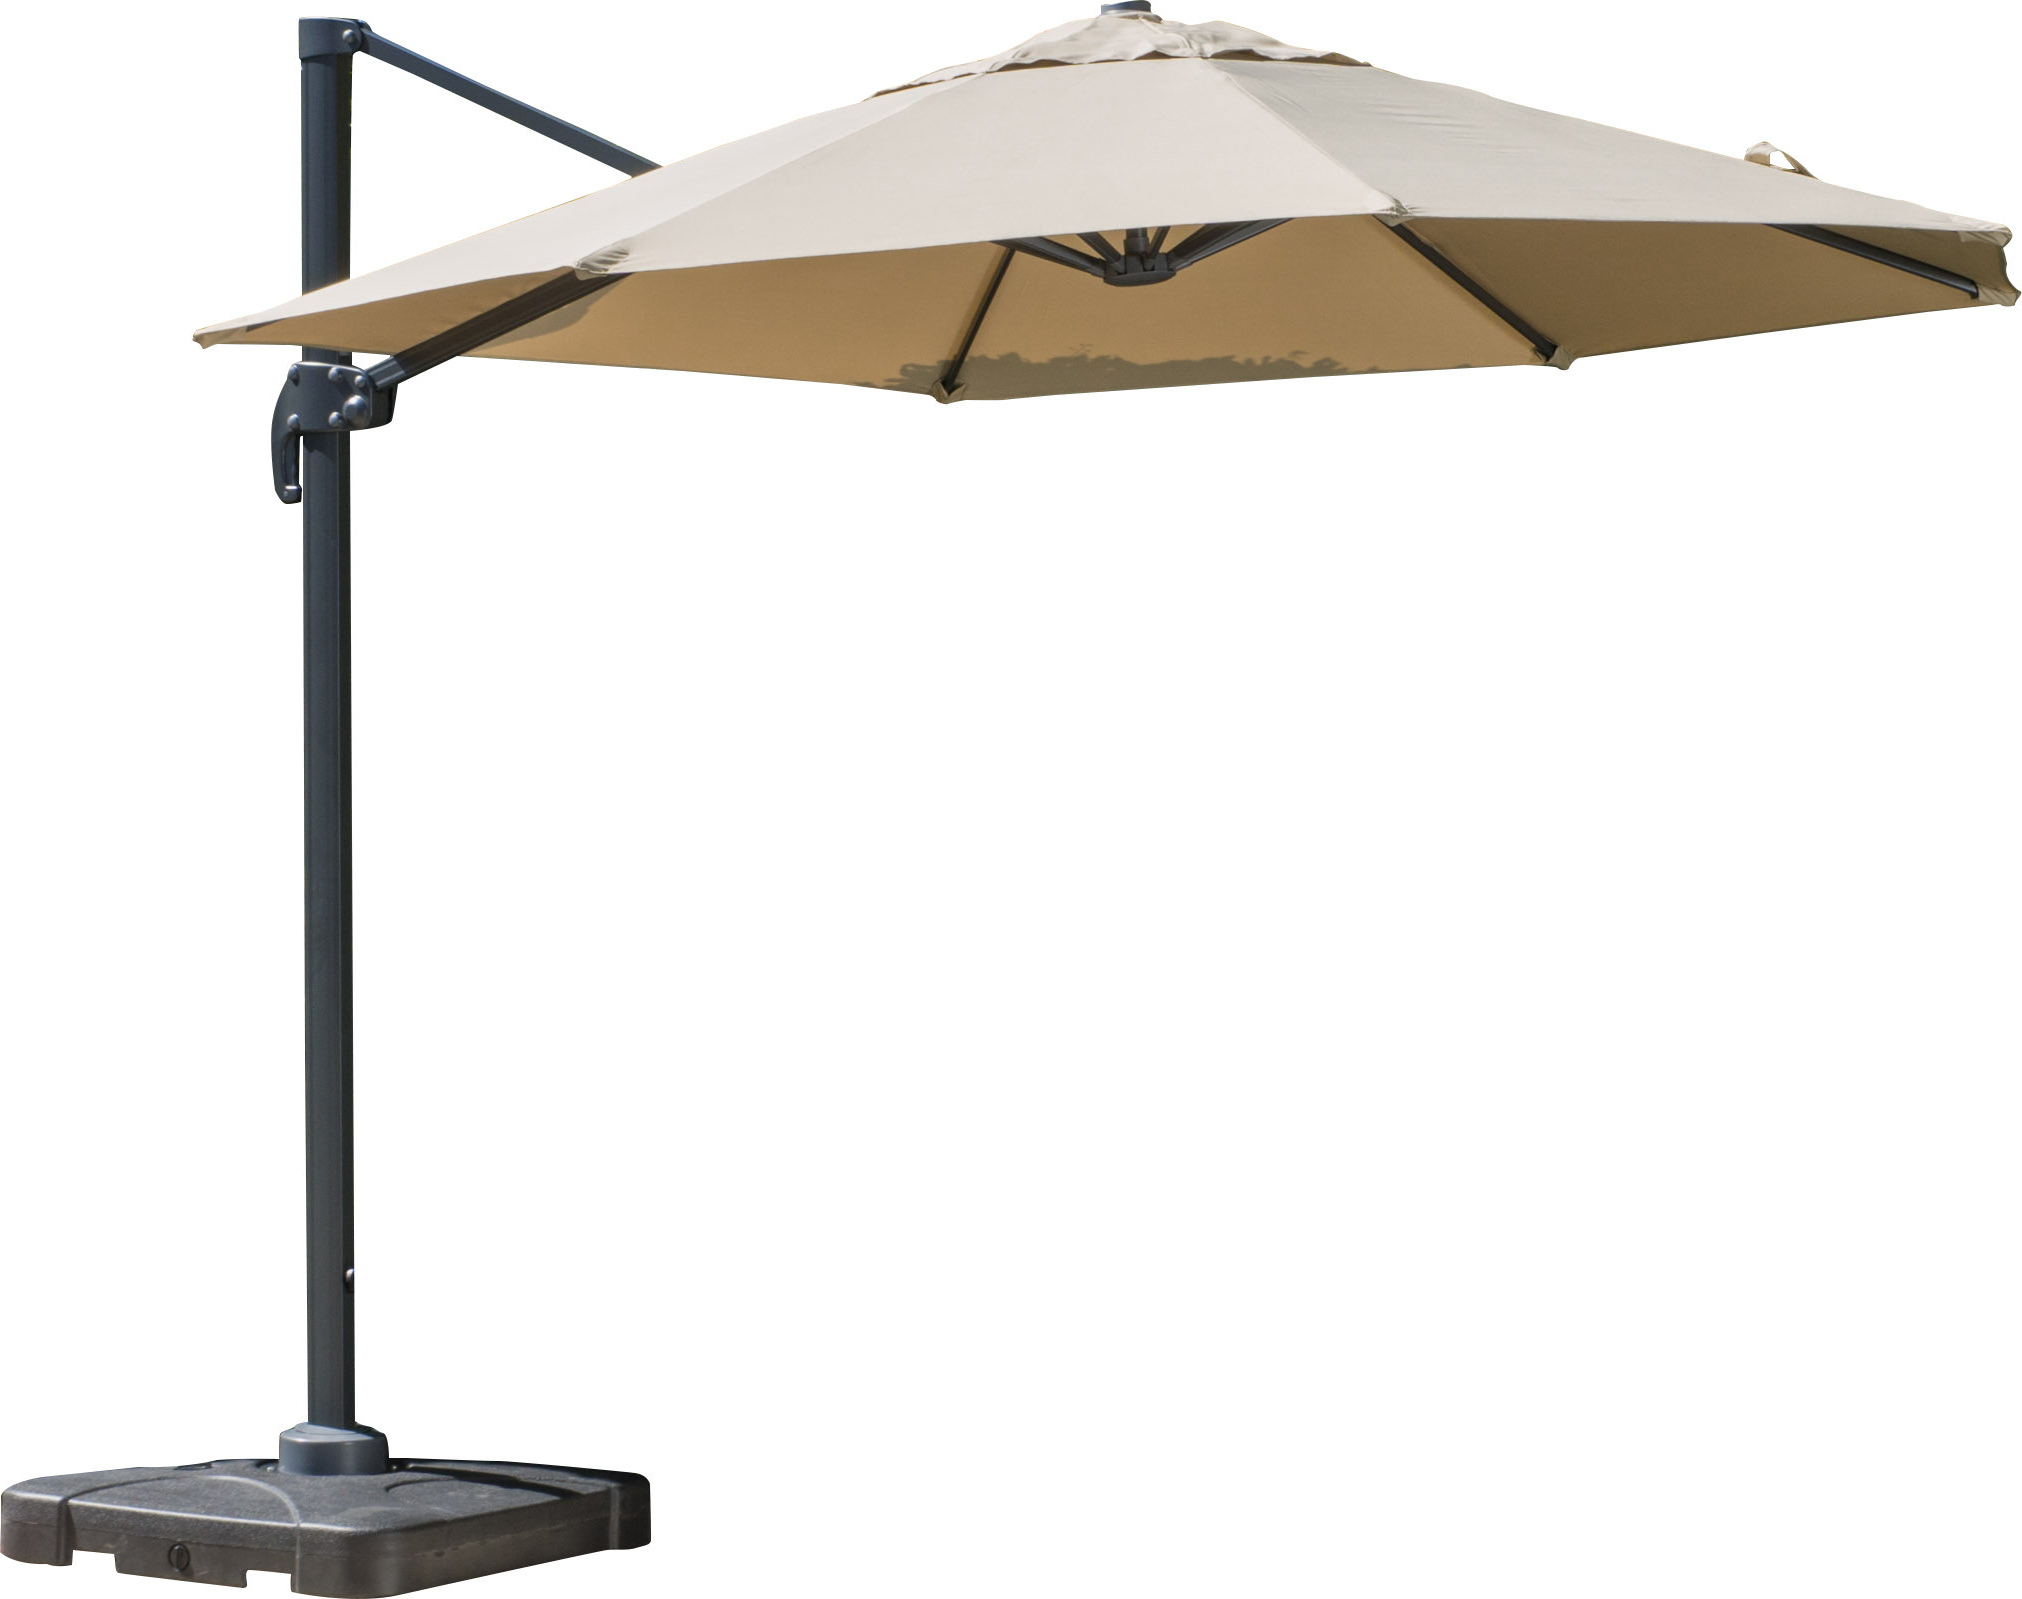 2020 Carlisle Cantilever Sunbrella Umbrellas Pertaining To Bellana Cantilever Umbrella (View 1 of 20)